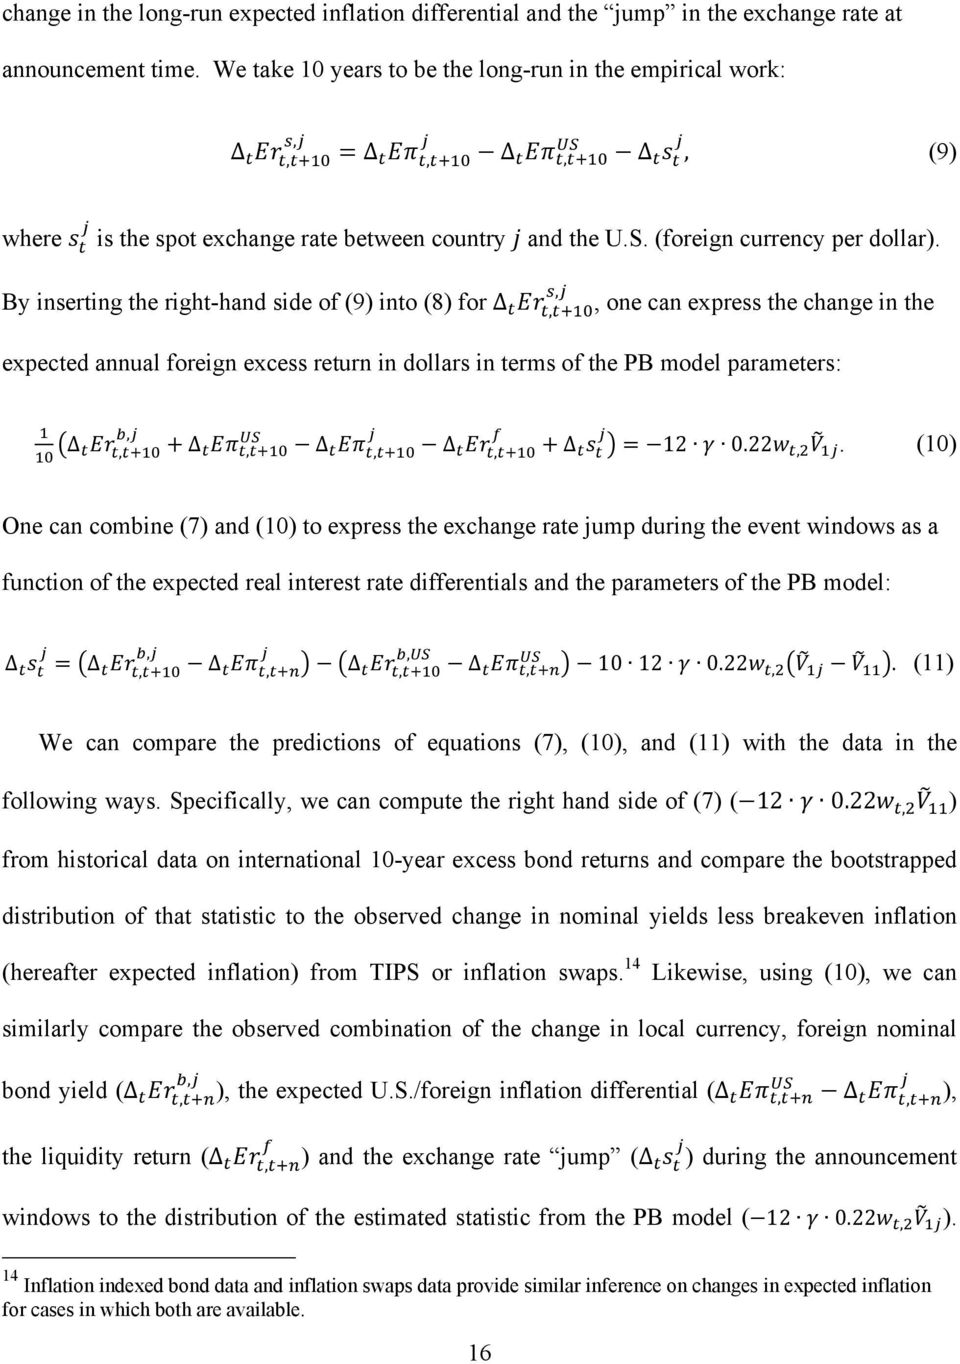 , By inserting the right-hand side of (9) into (8) for,, one can express the change in the expected annual foreign excess return in dollars in terms of the PB model parameters:,,,,, 12 0.22,.